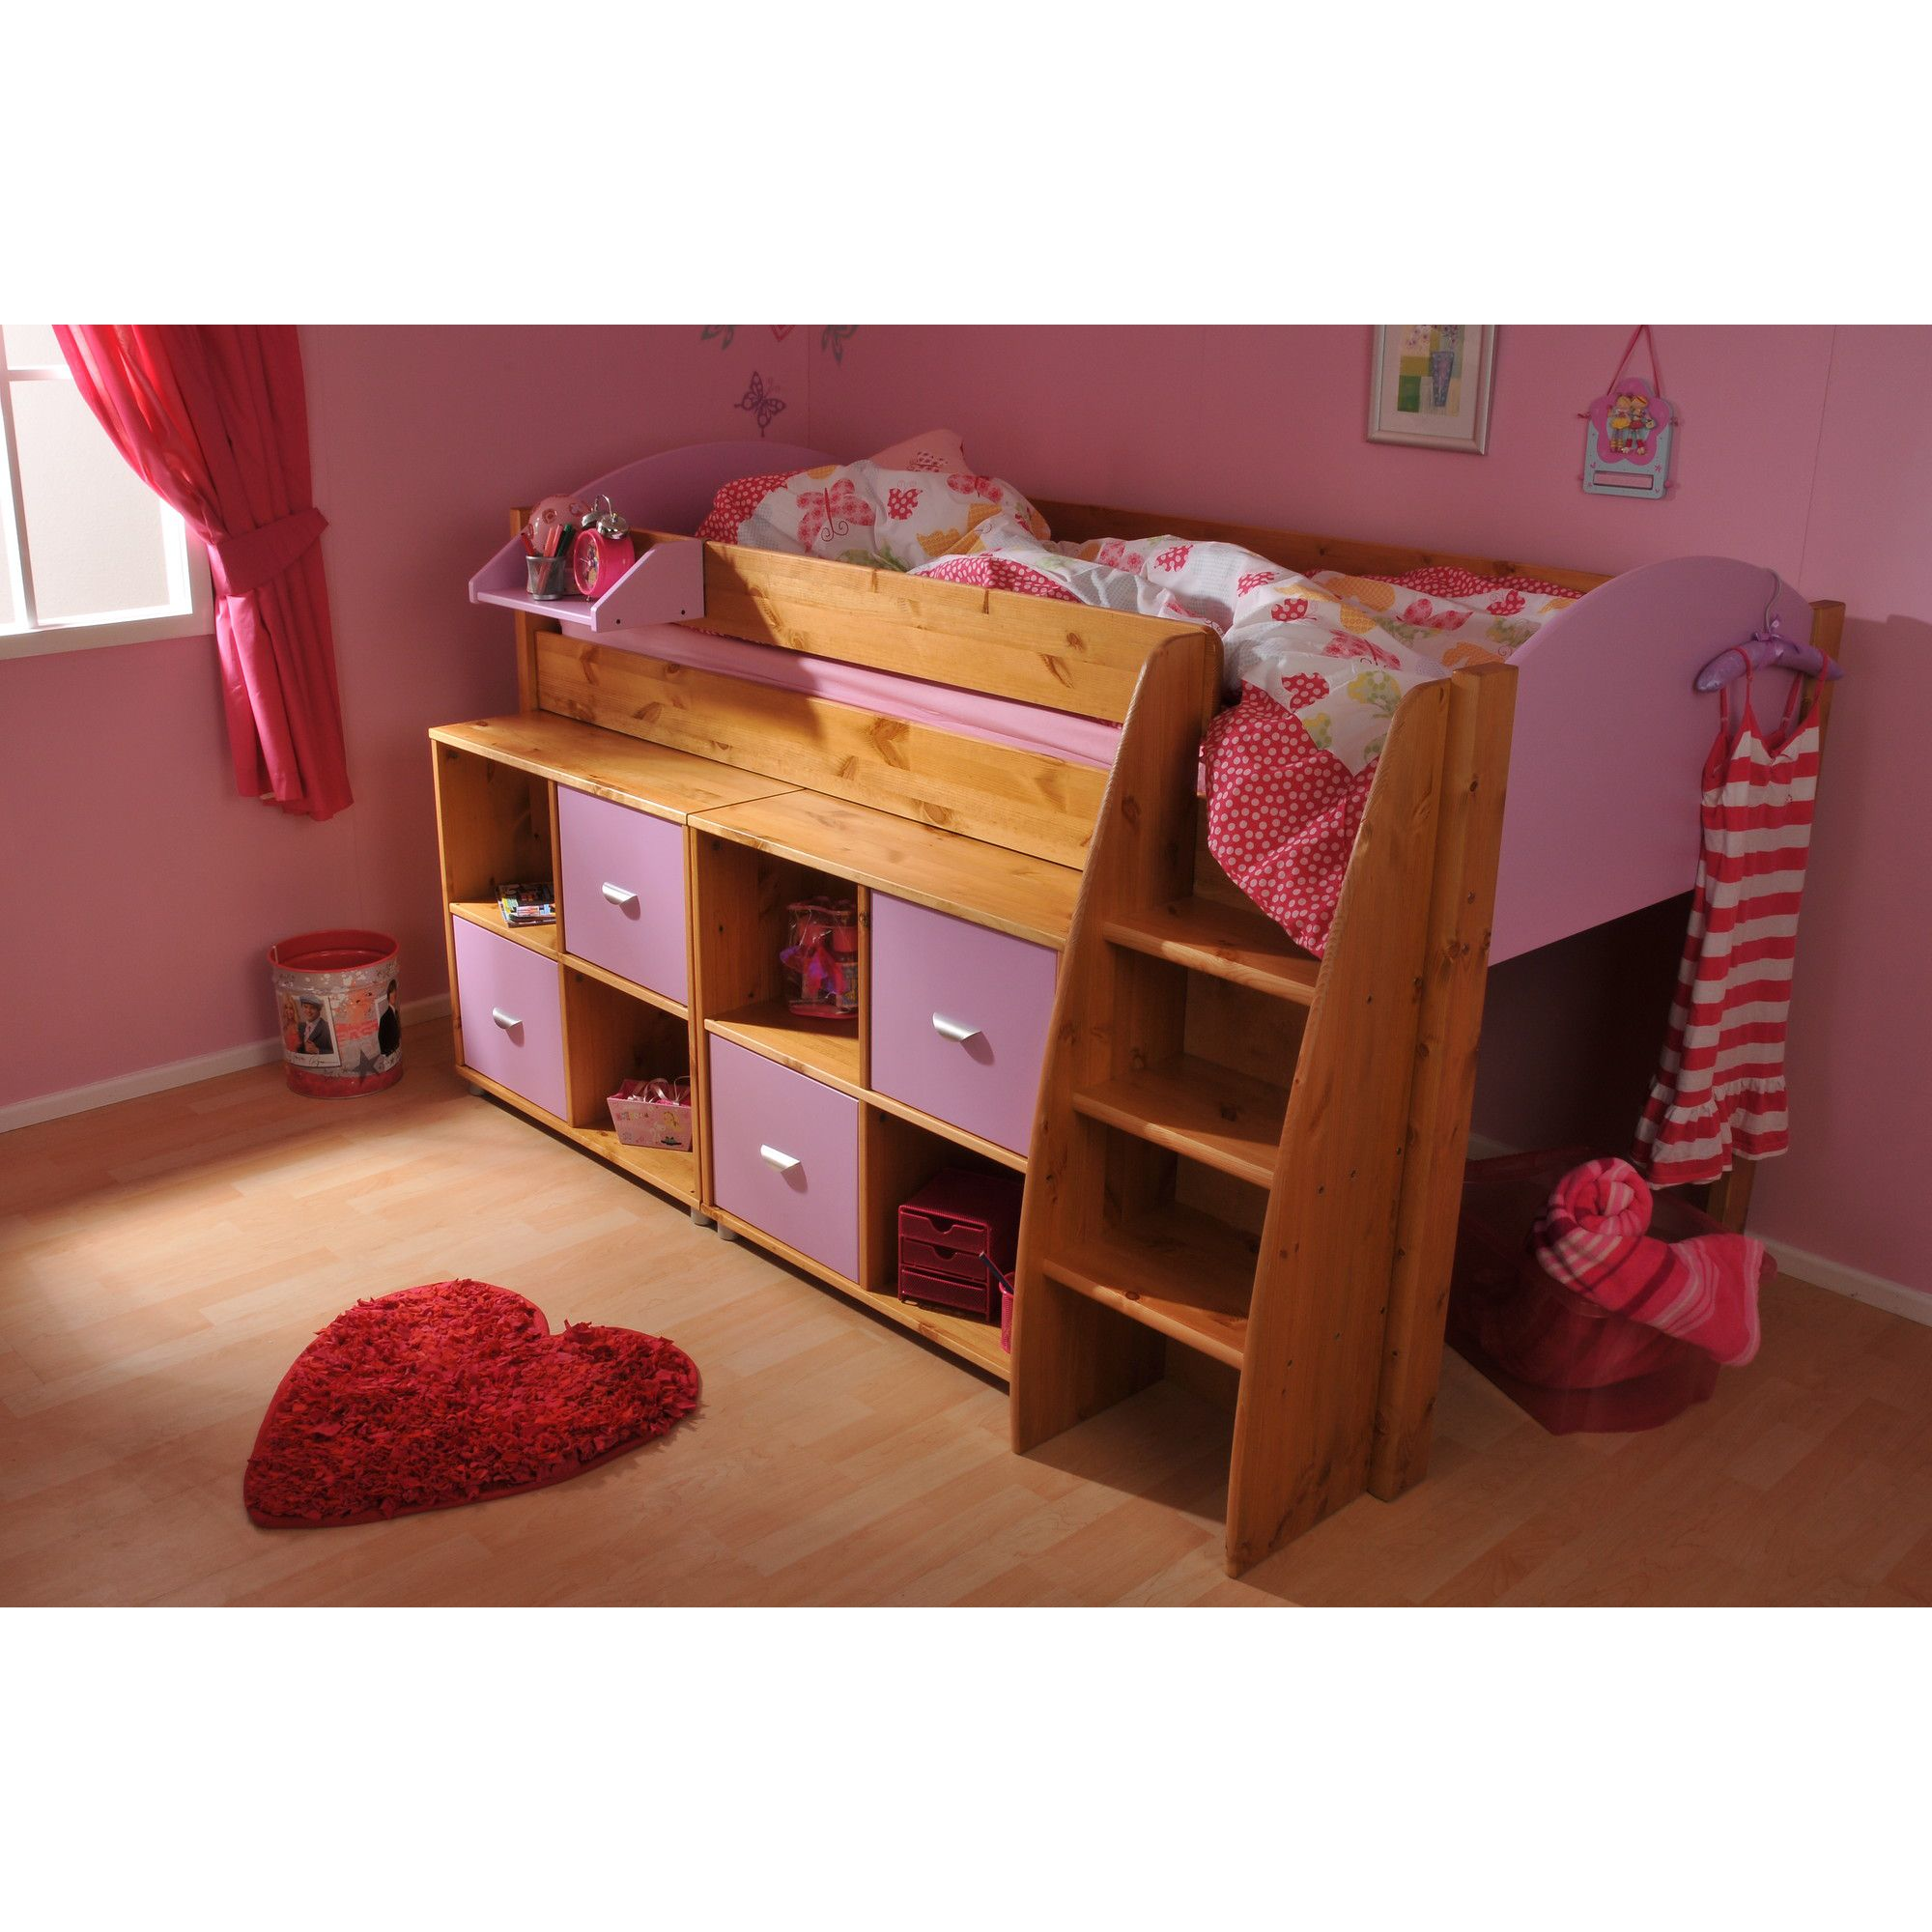 Stompa Rondo Mid Sleeper with 8 Cube Unit - Antique - Lilac at Tesco Direct